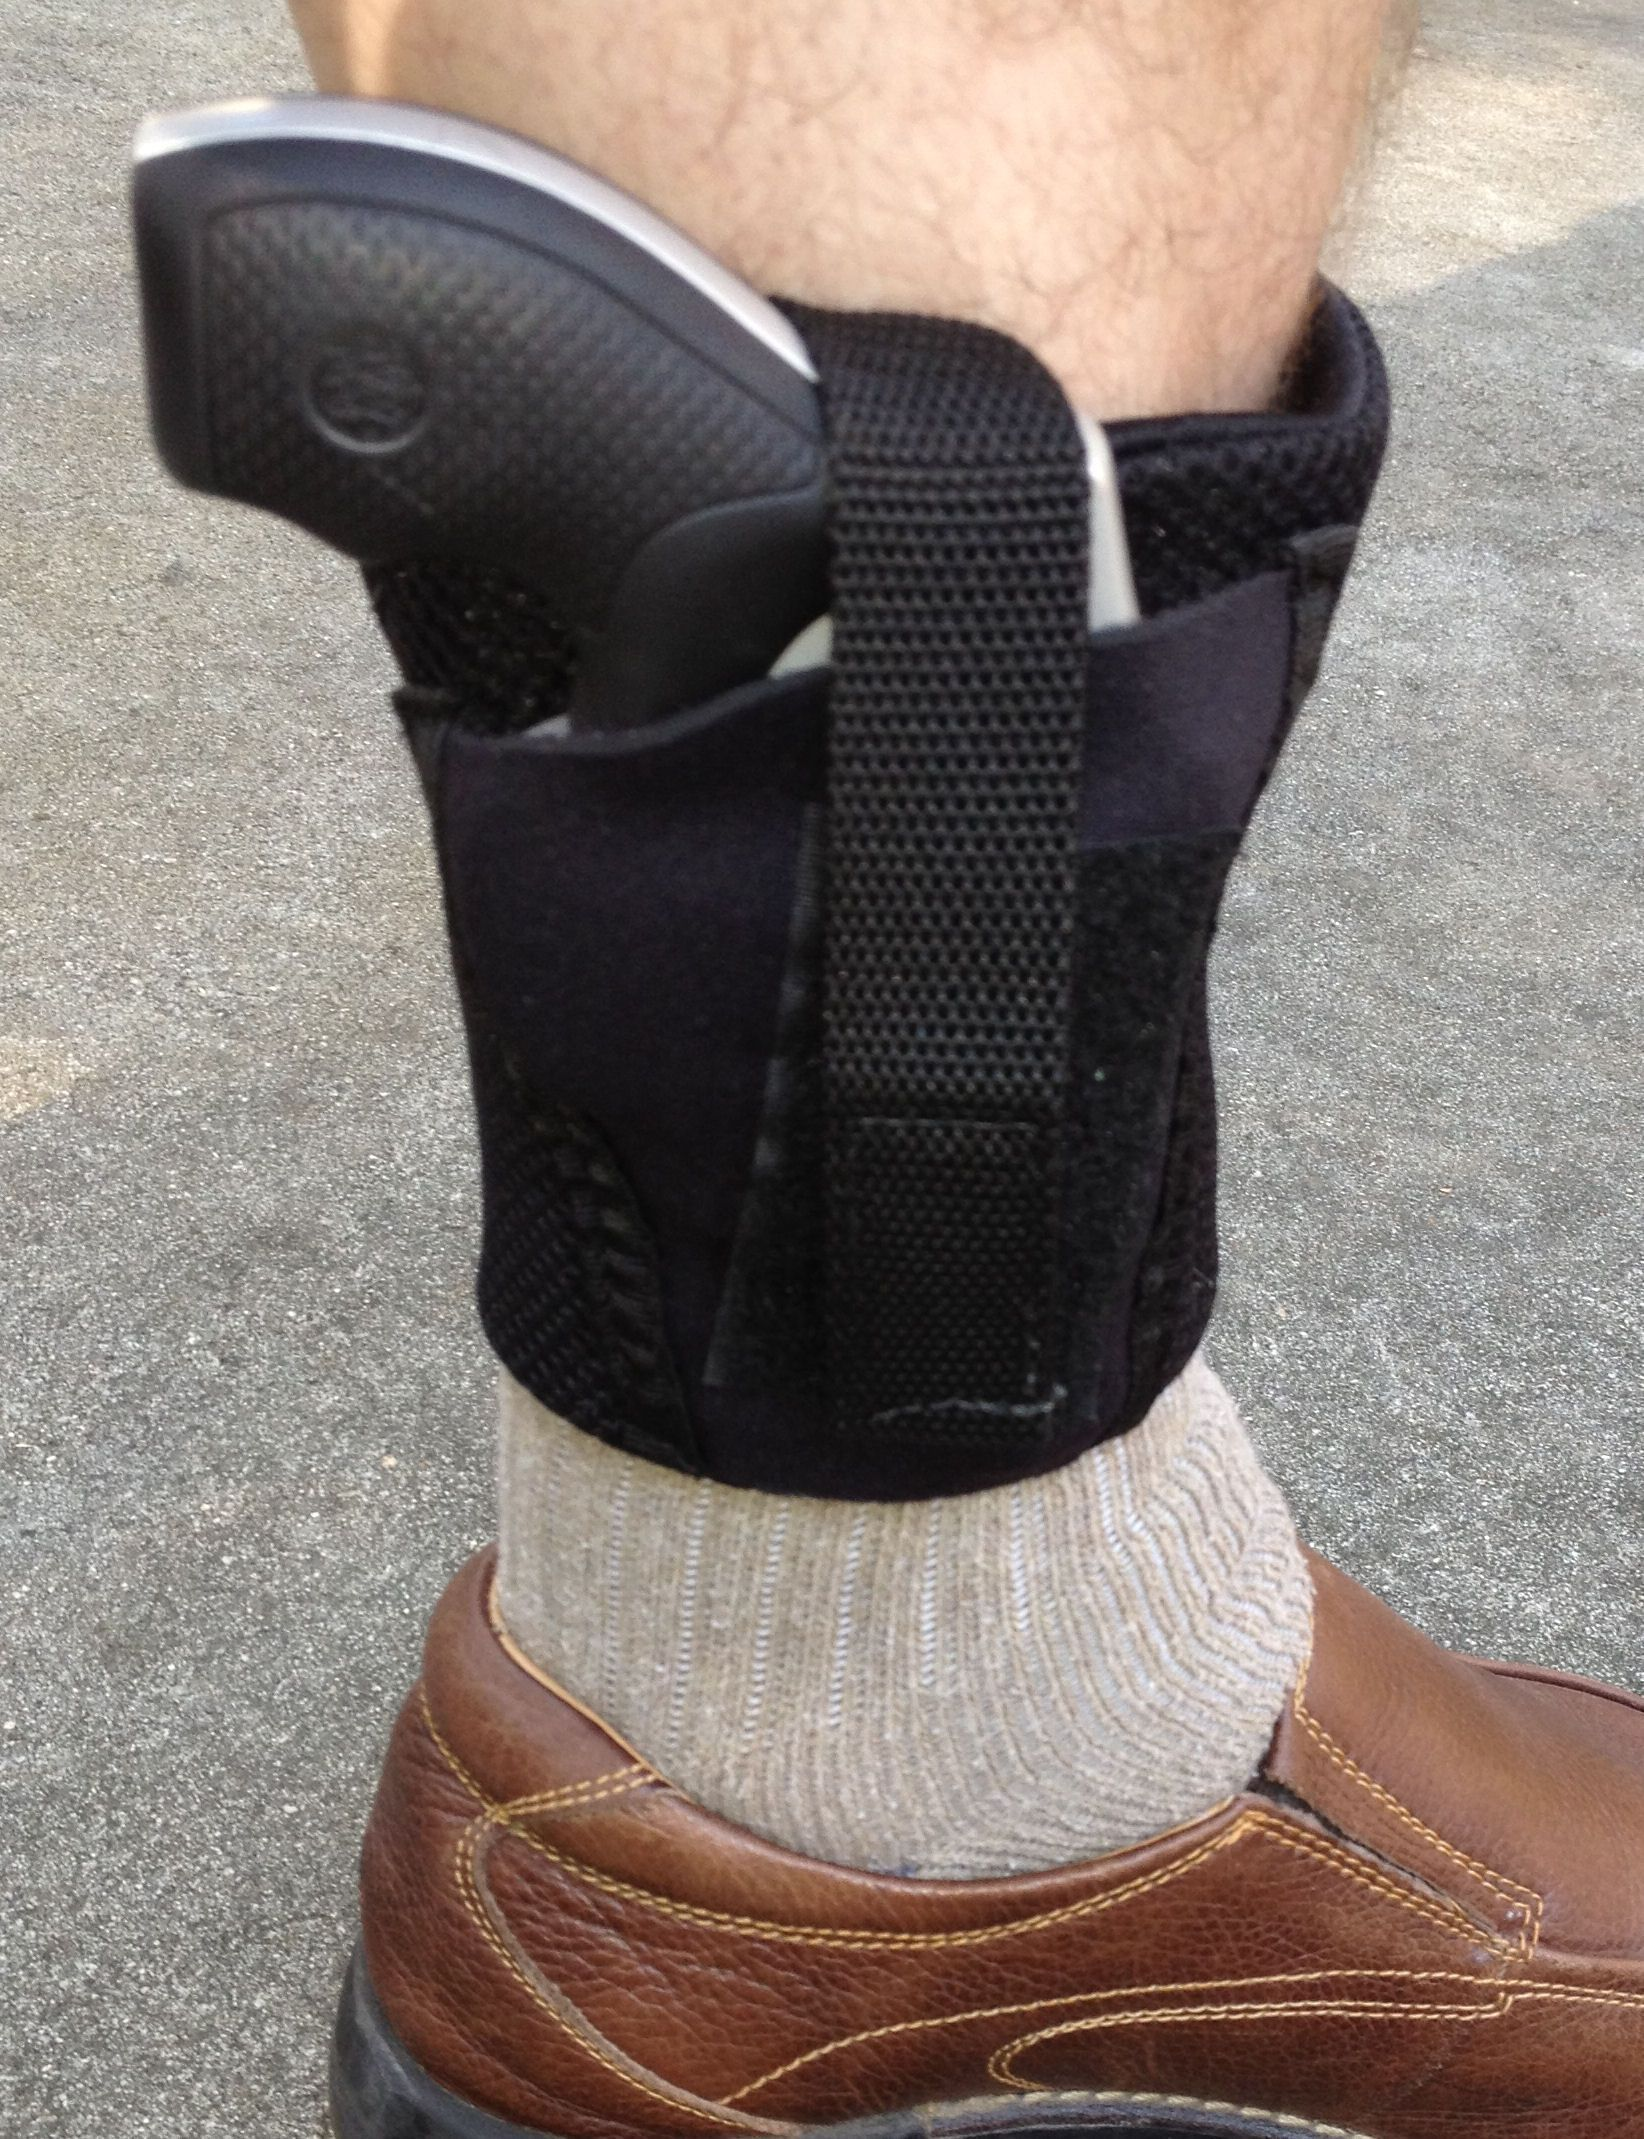 d751759afaea Comfort-Air Ankle Gun Holster   Telor Tactical  gunholster   Better ...